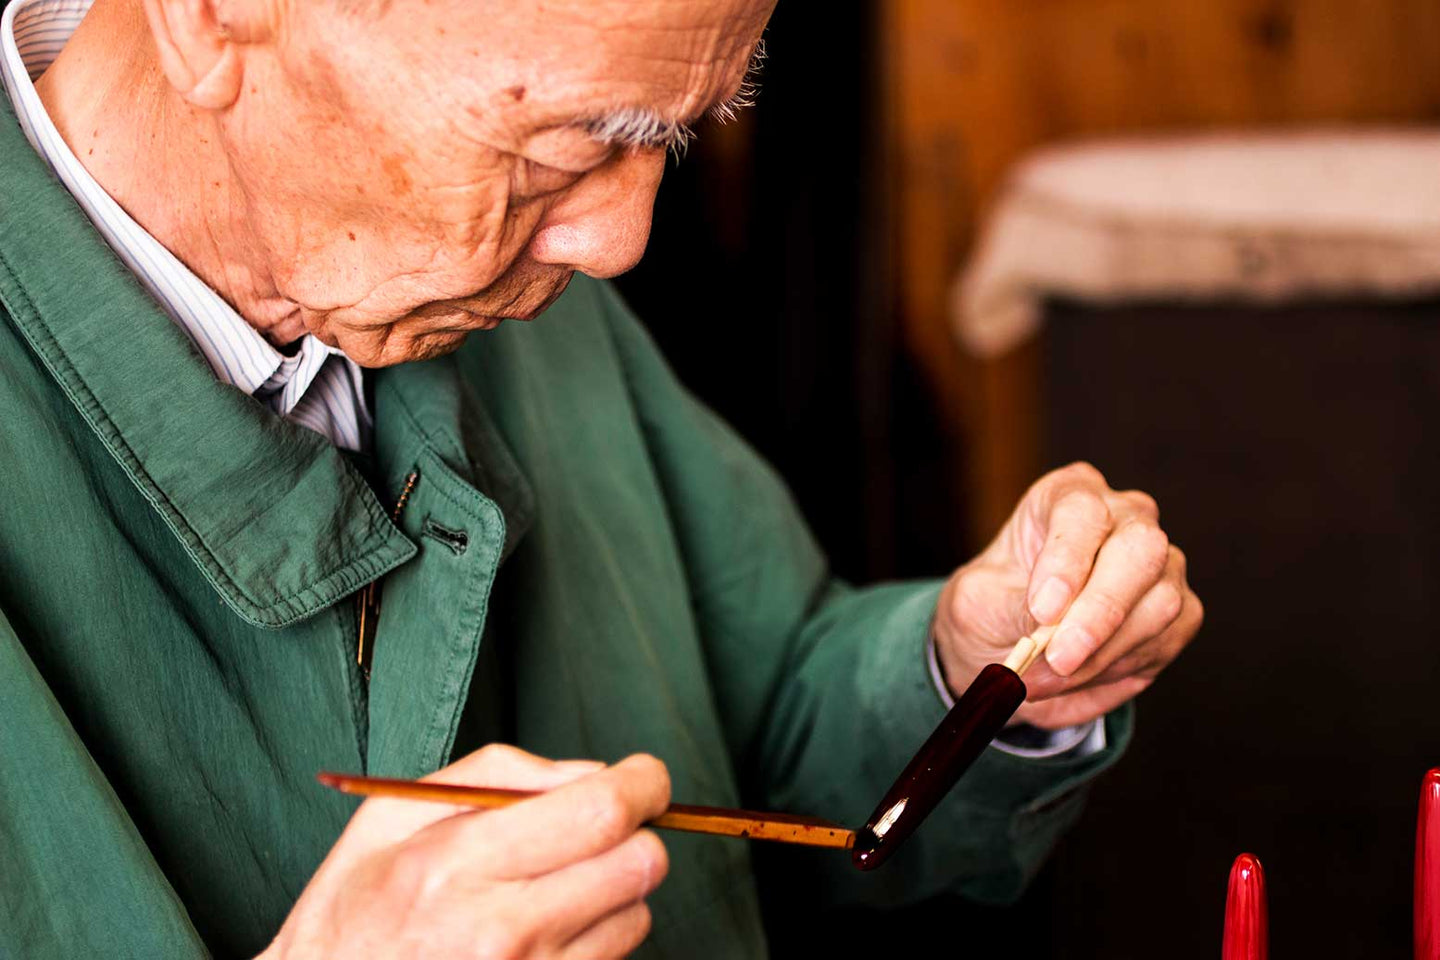 Master Taya is one of the top Masters in Japanese lacquerware creation